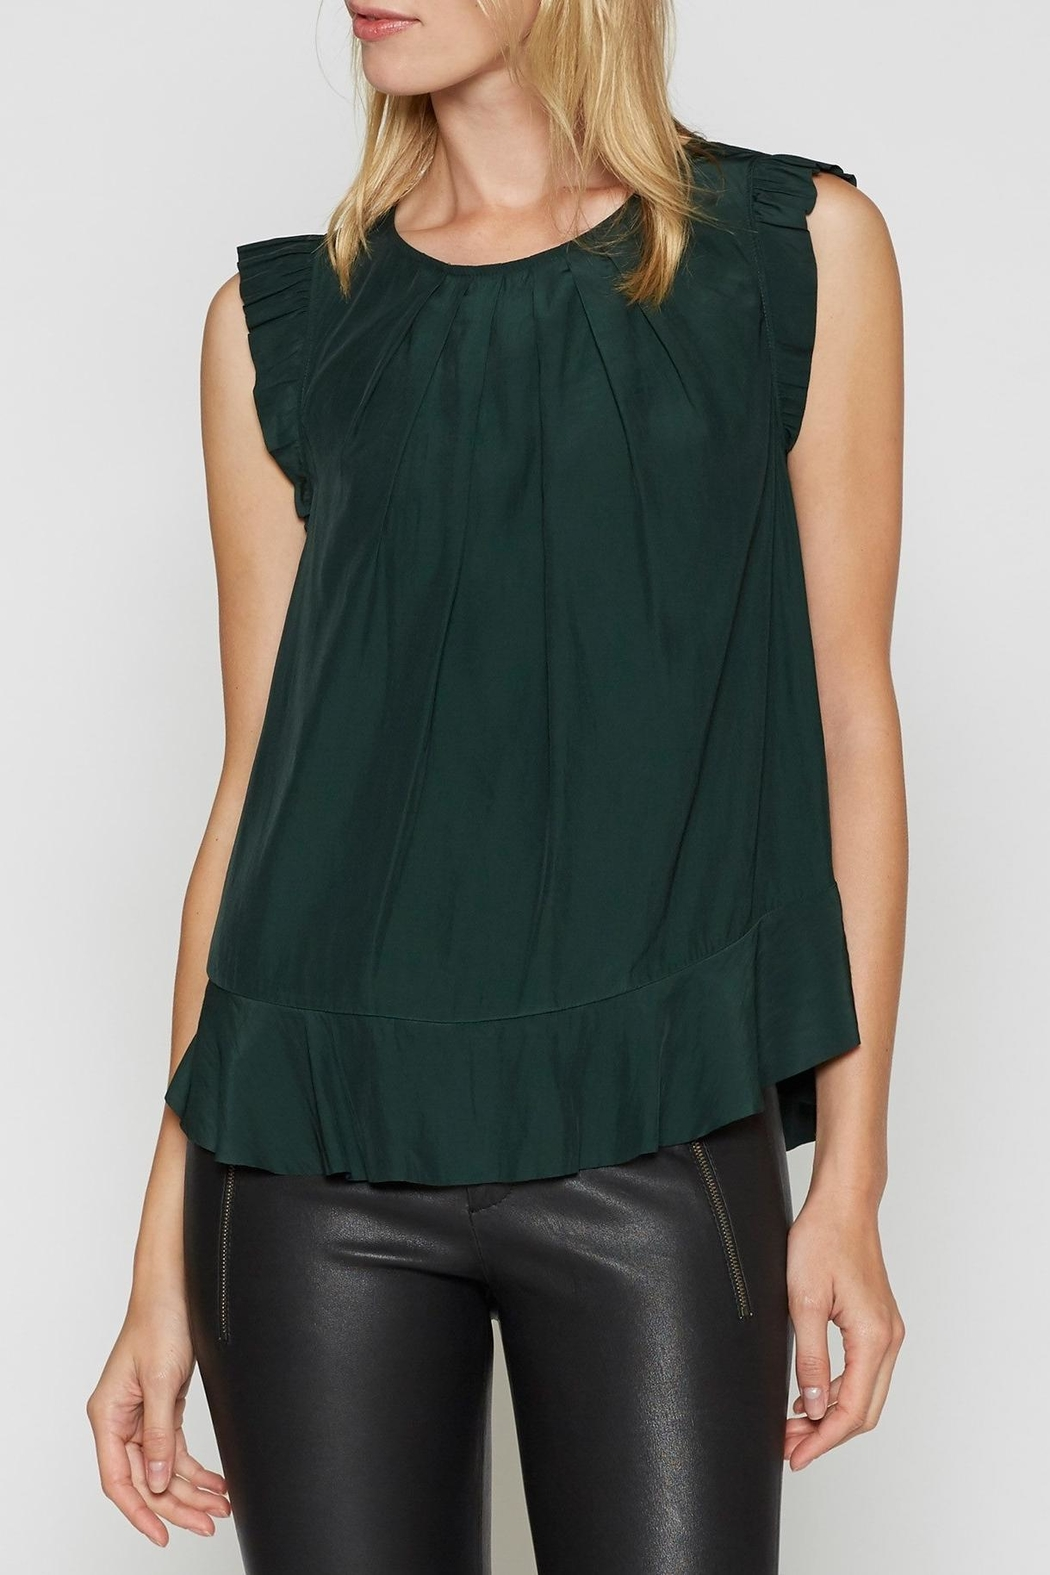 Joie Euna Flutter Top - Front Cropped Image